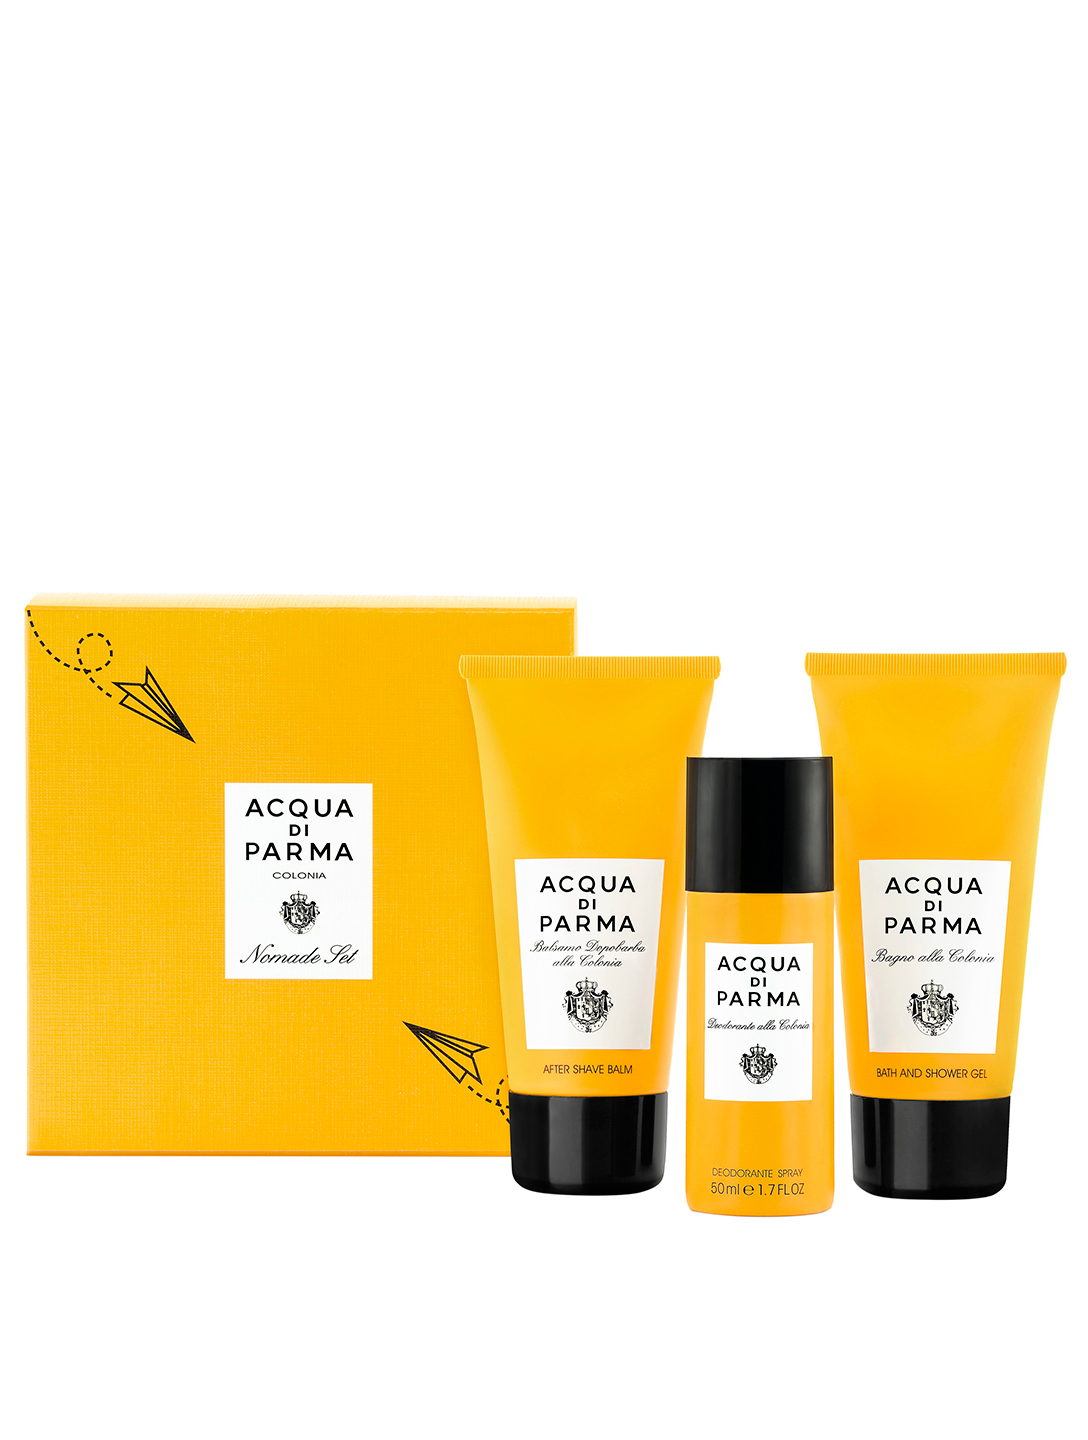 ACQUA DI PARMA Colonia Nomade Set Beauty